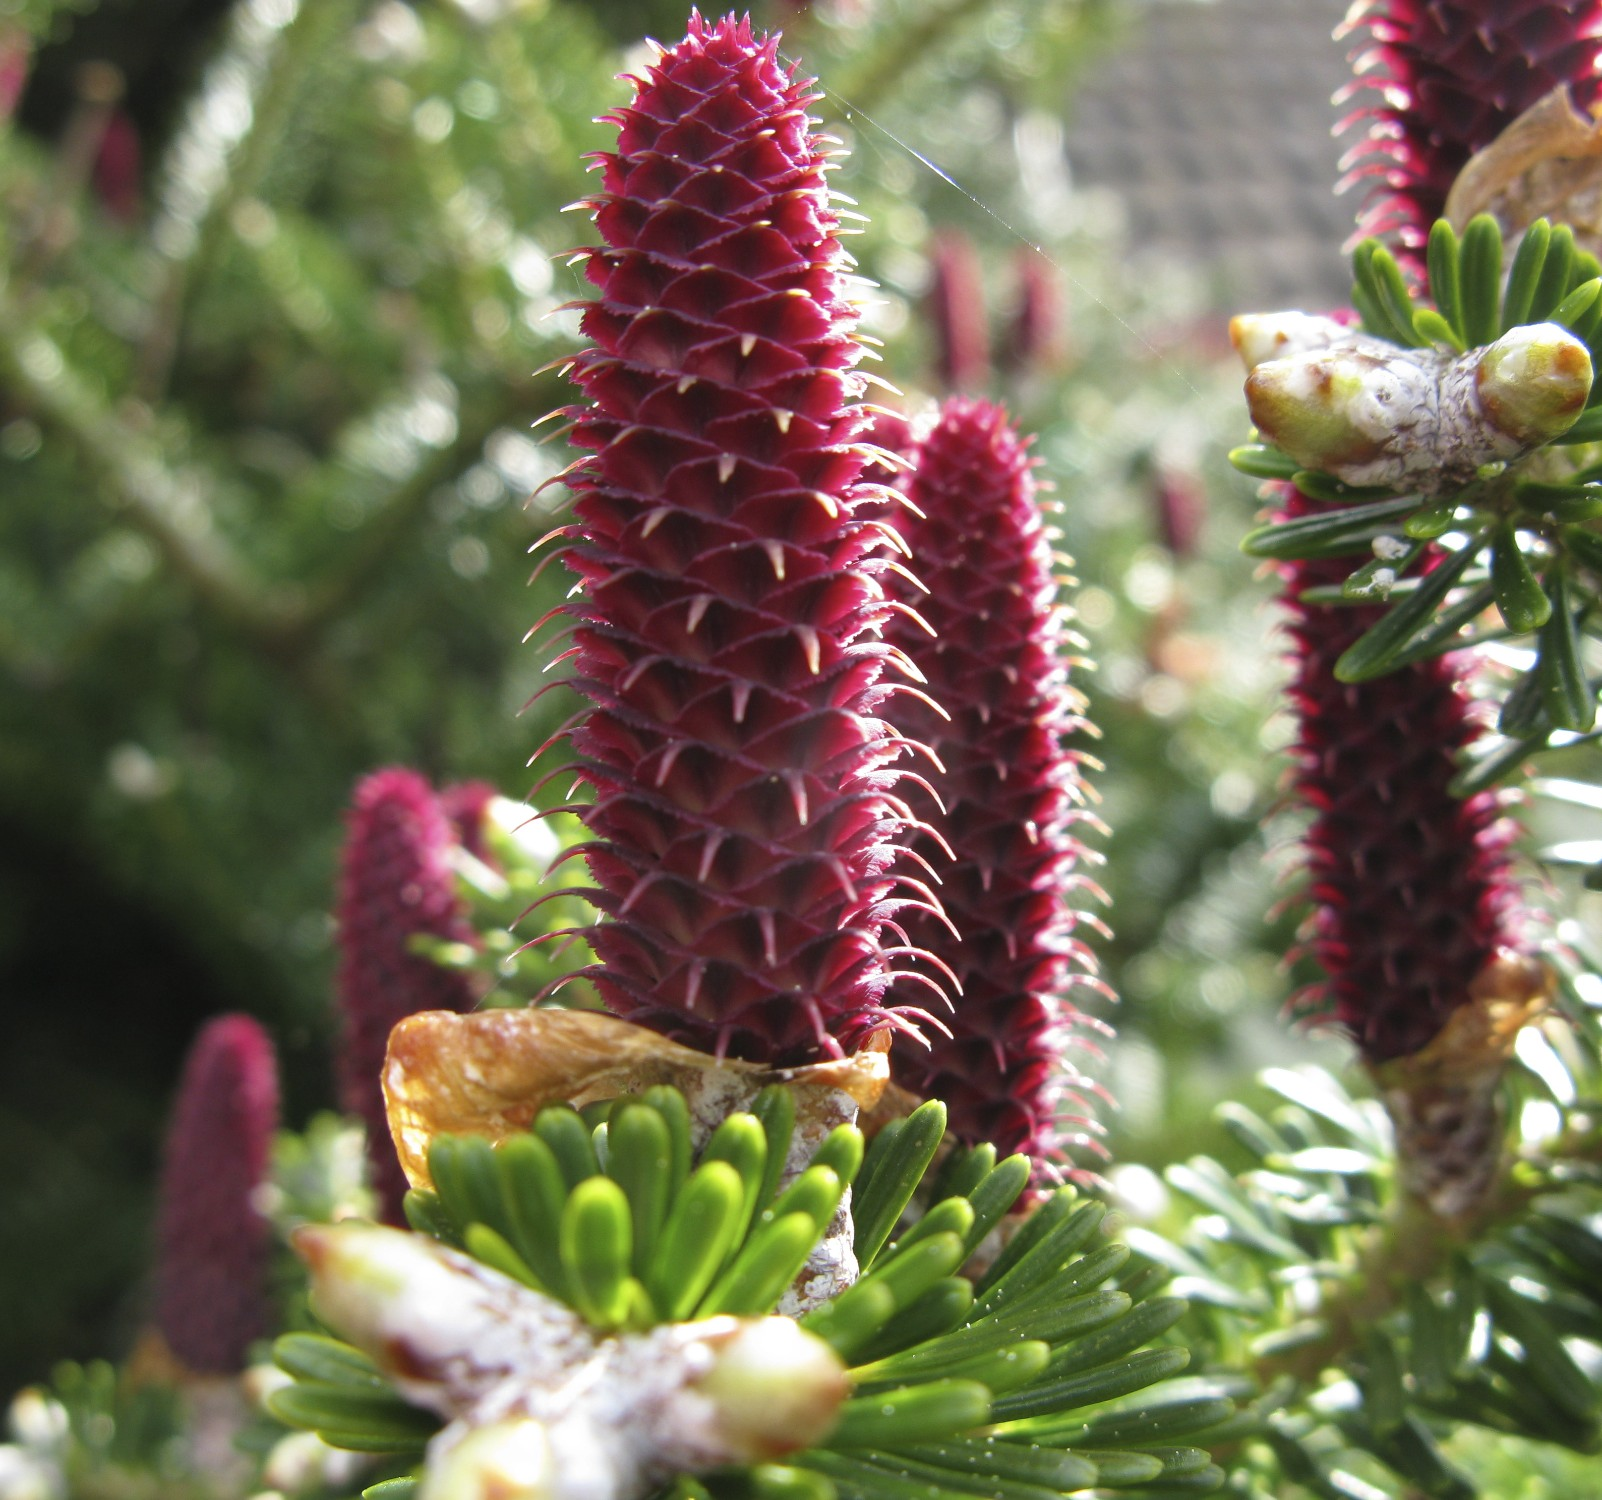 More Growing On The Pine